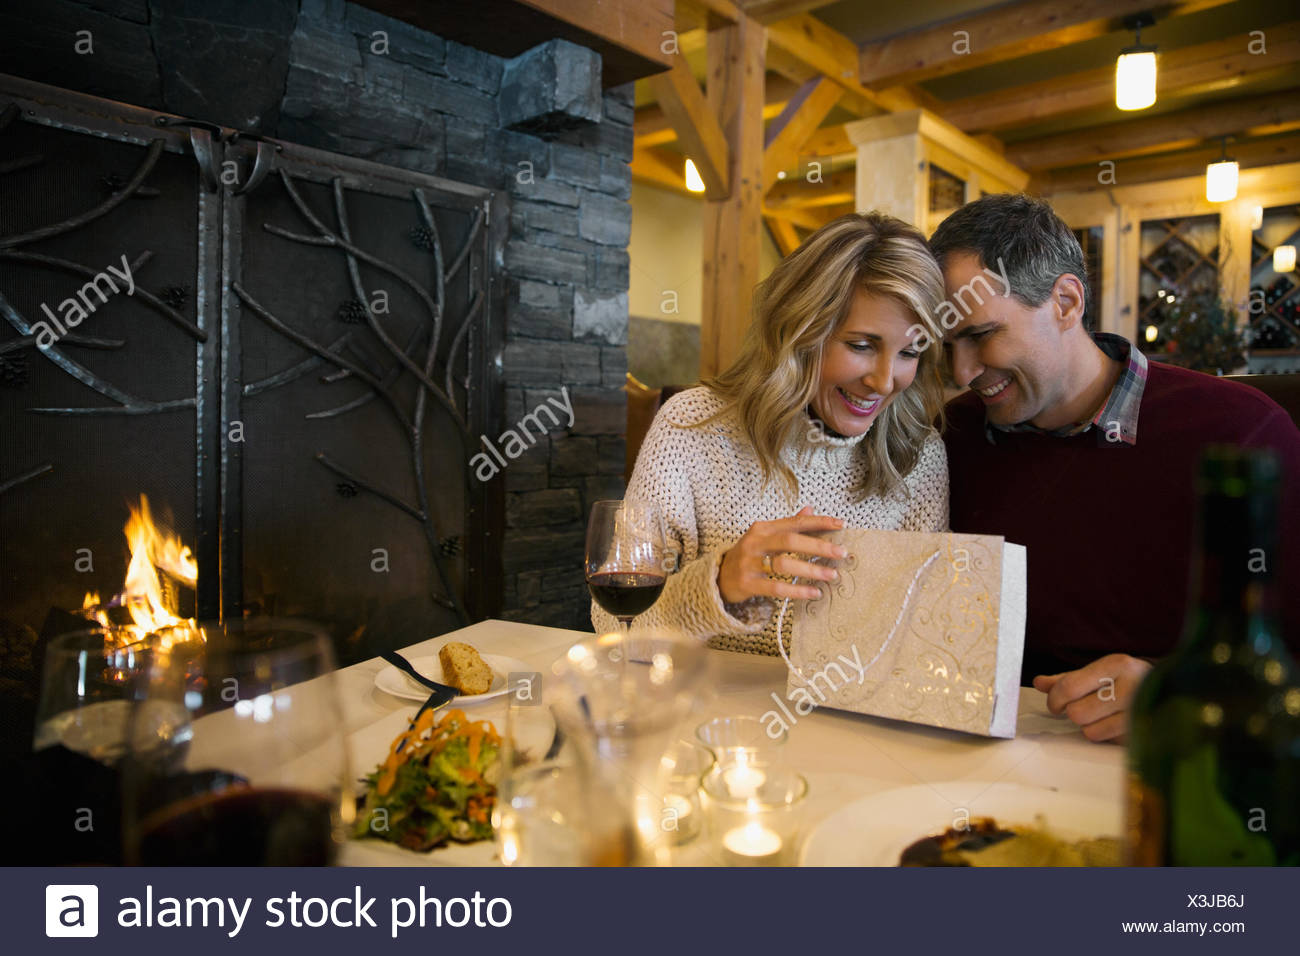 Man giving woman gift at fireside restaurant table - Stock Image